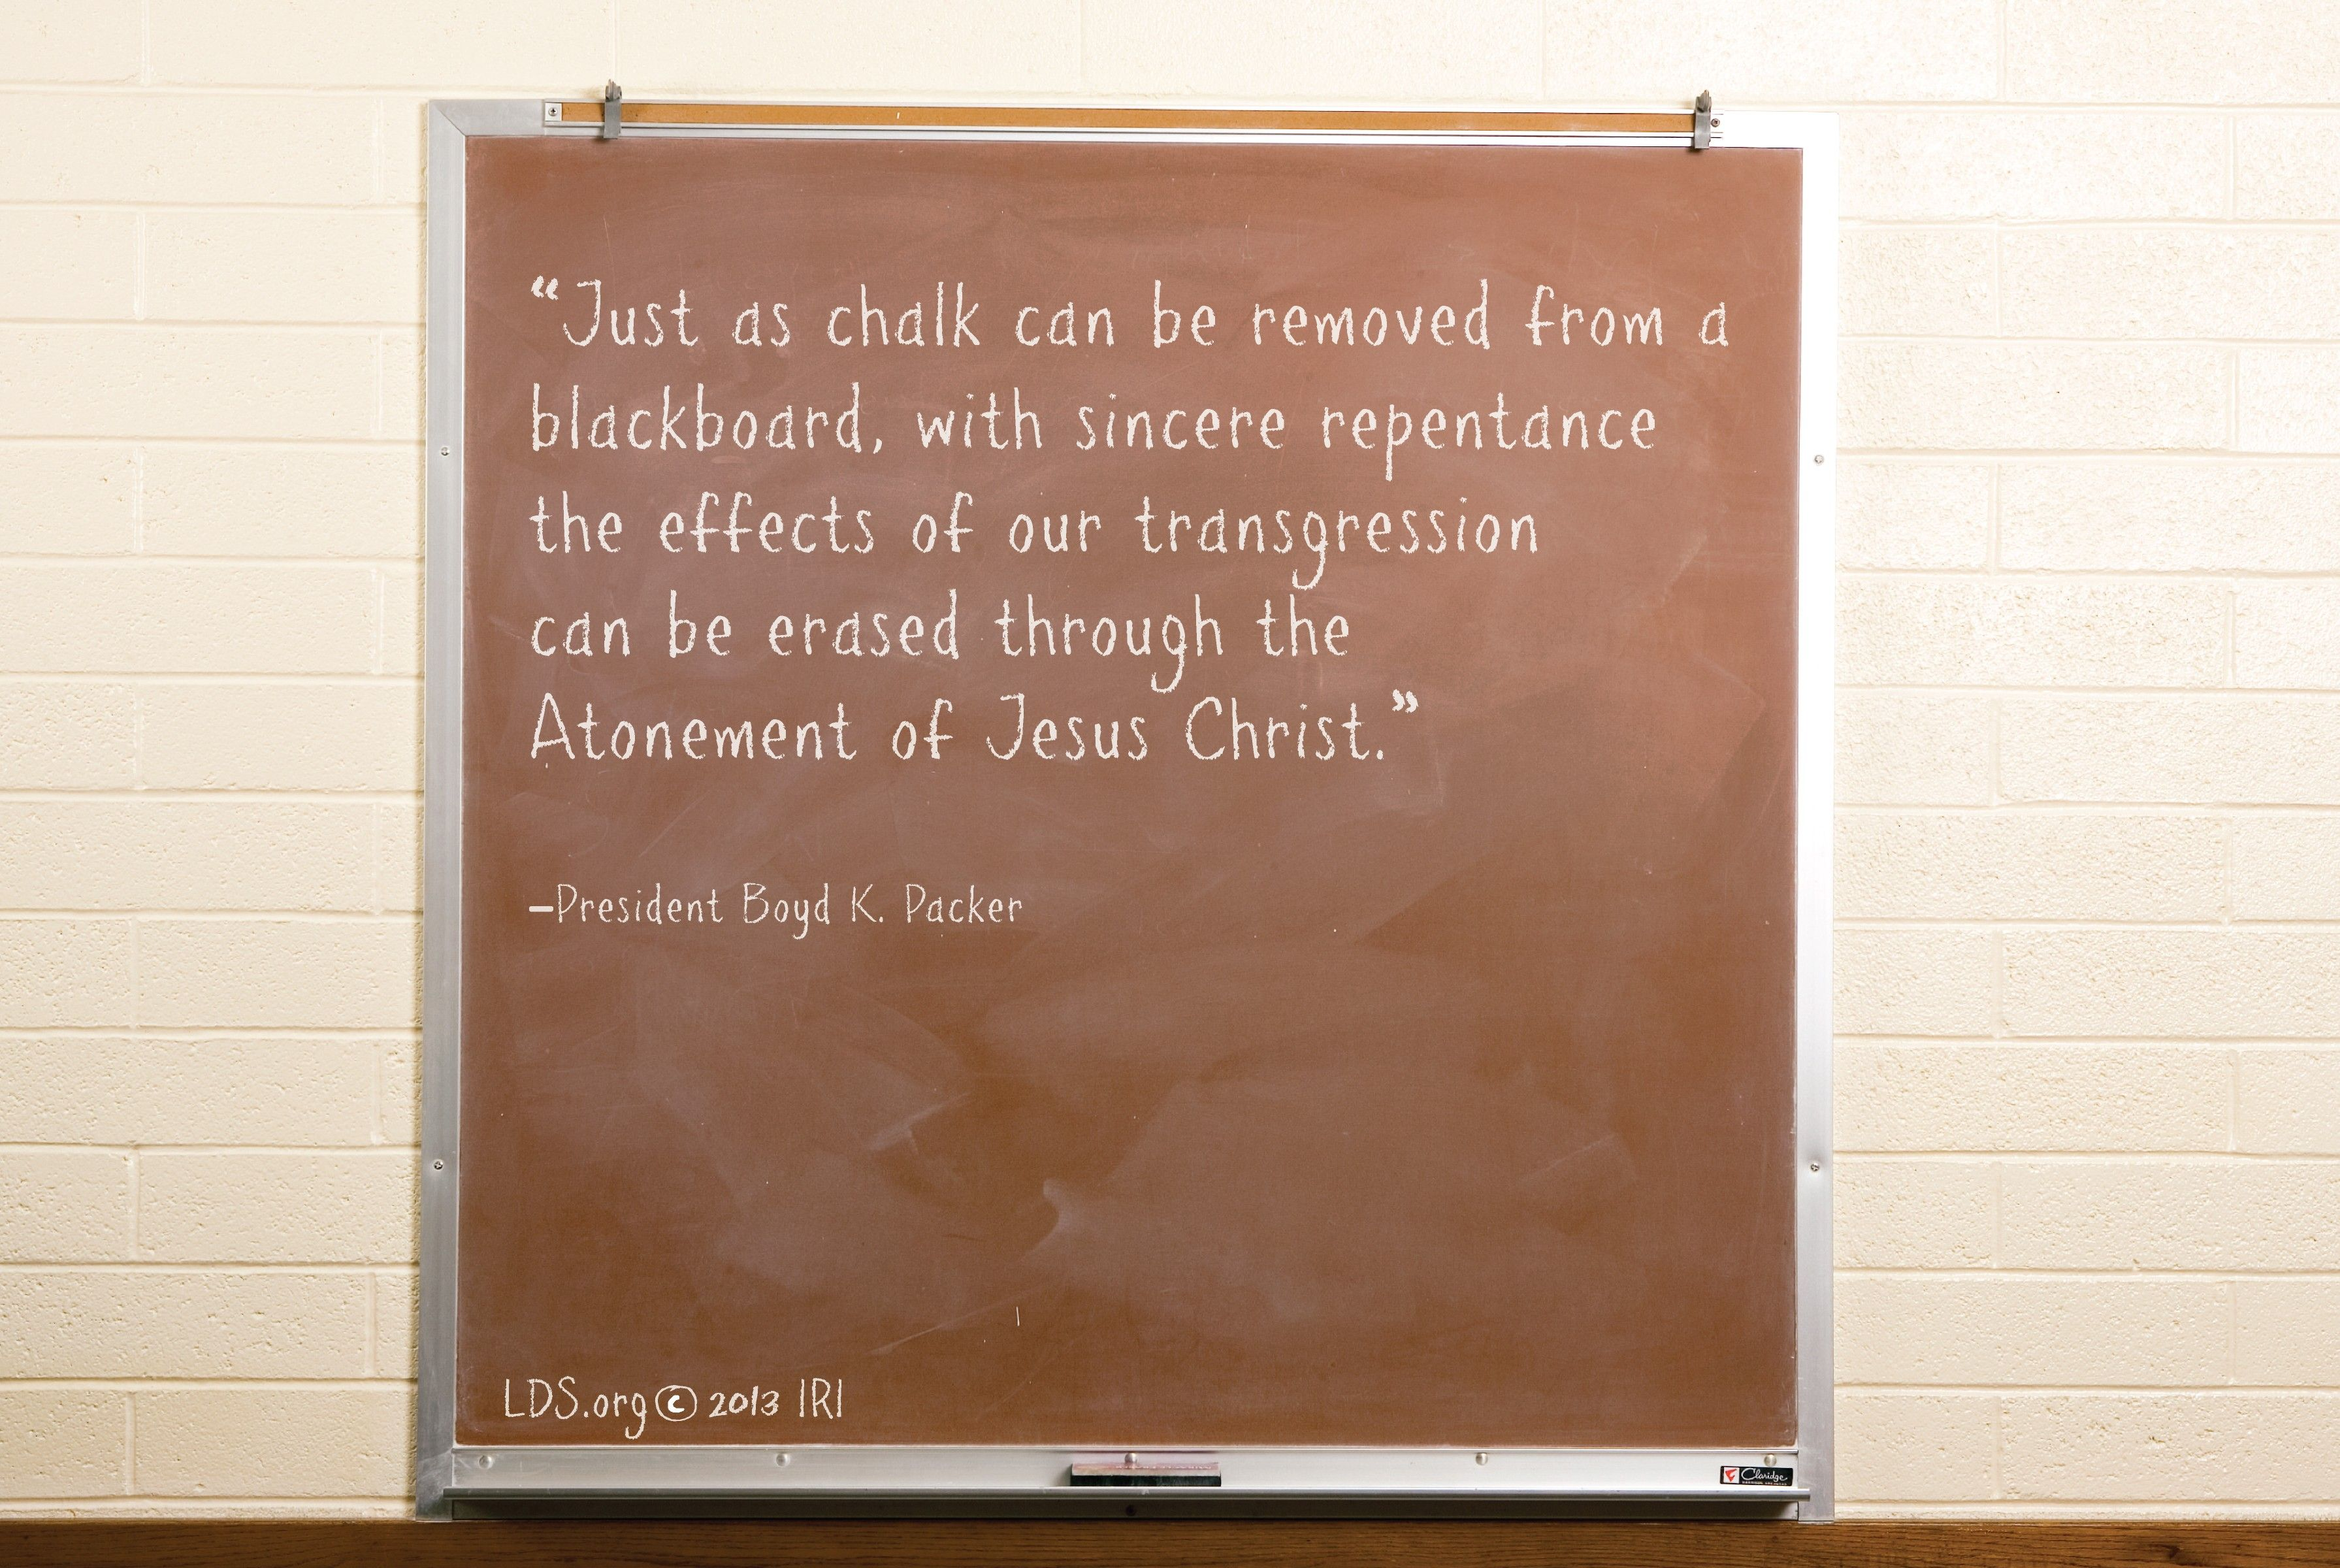 """""""Just as chalk can be removed from a blackboard, with sincere repentance the effects of our transgression can be erased through the Atonement of Jesus Christ.""""—President Boyd K. Packer, """"The Key to Spiritual Protection"""""""